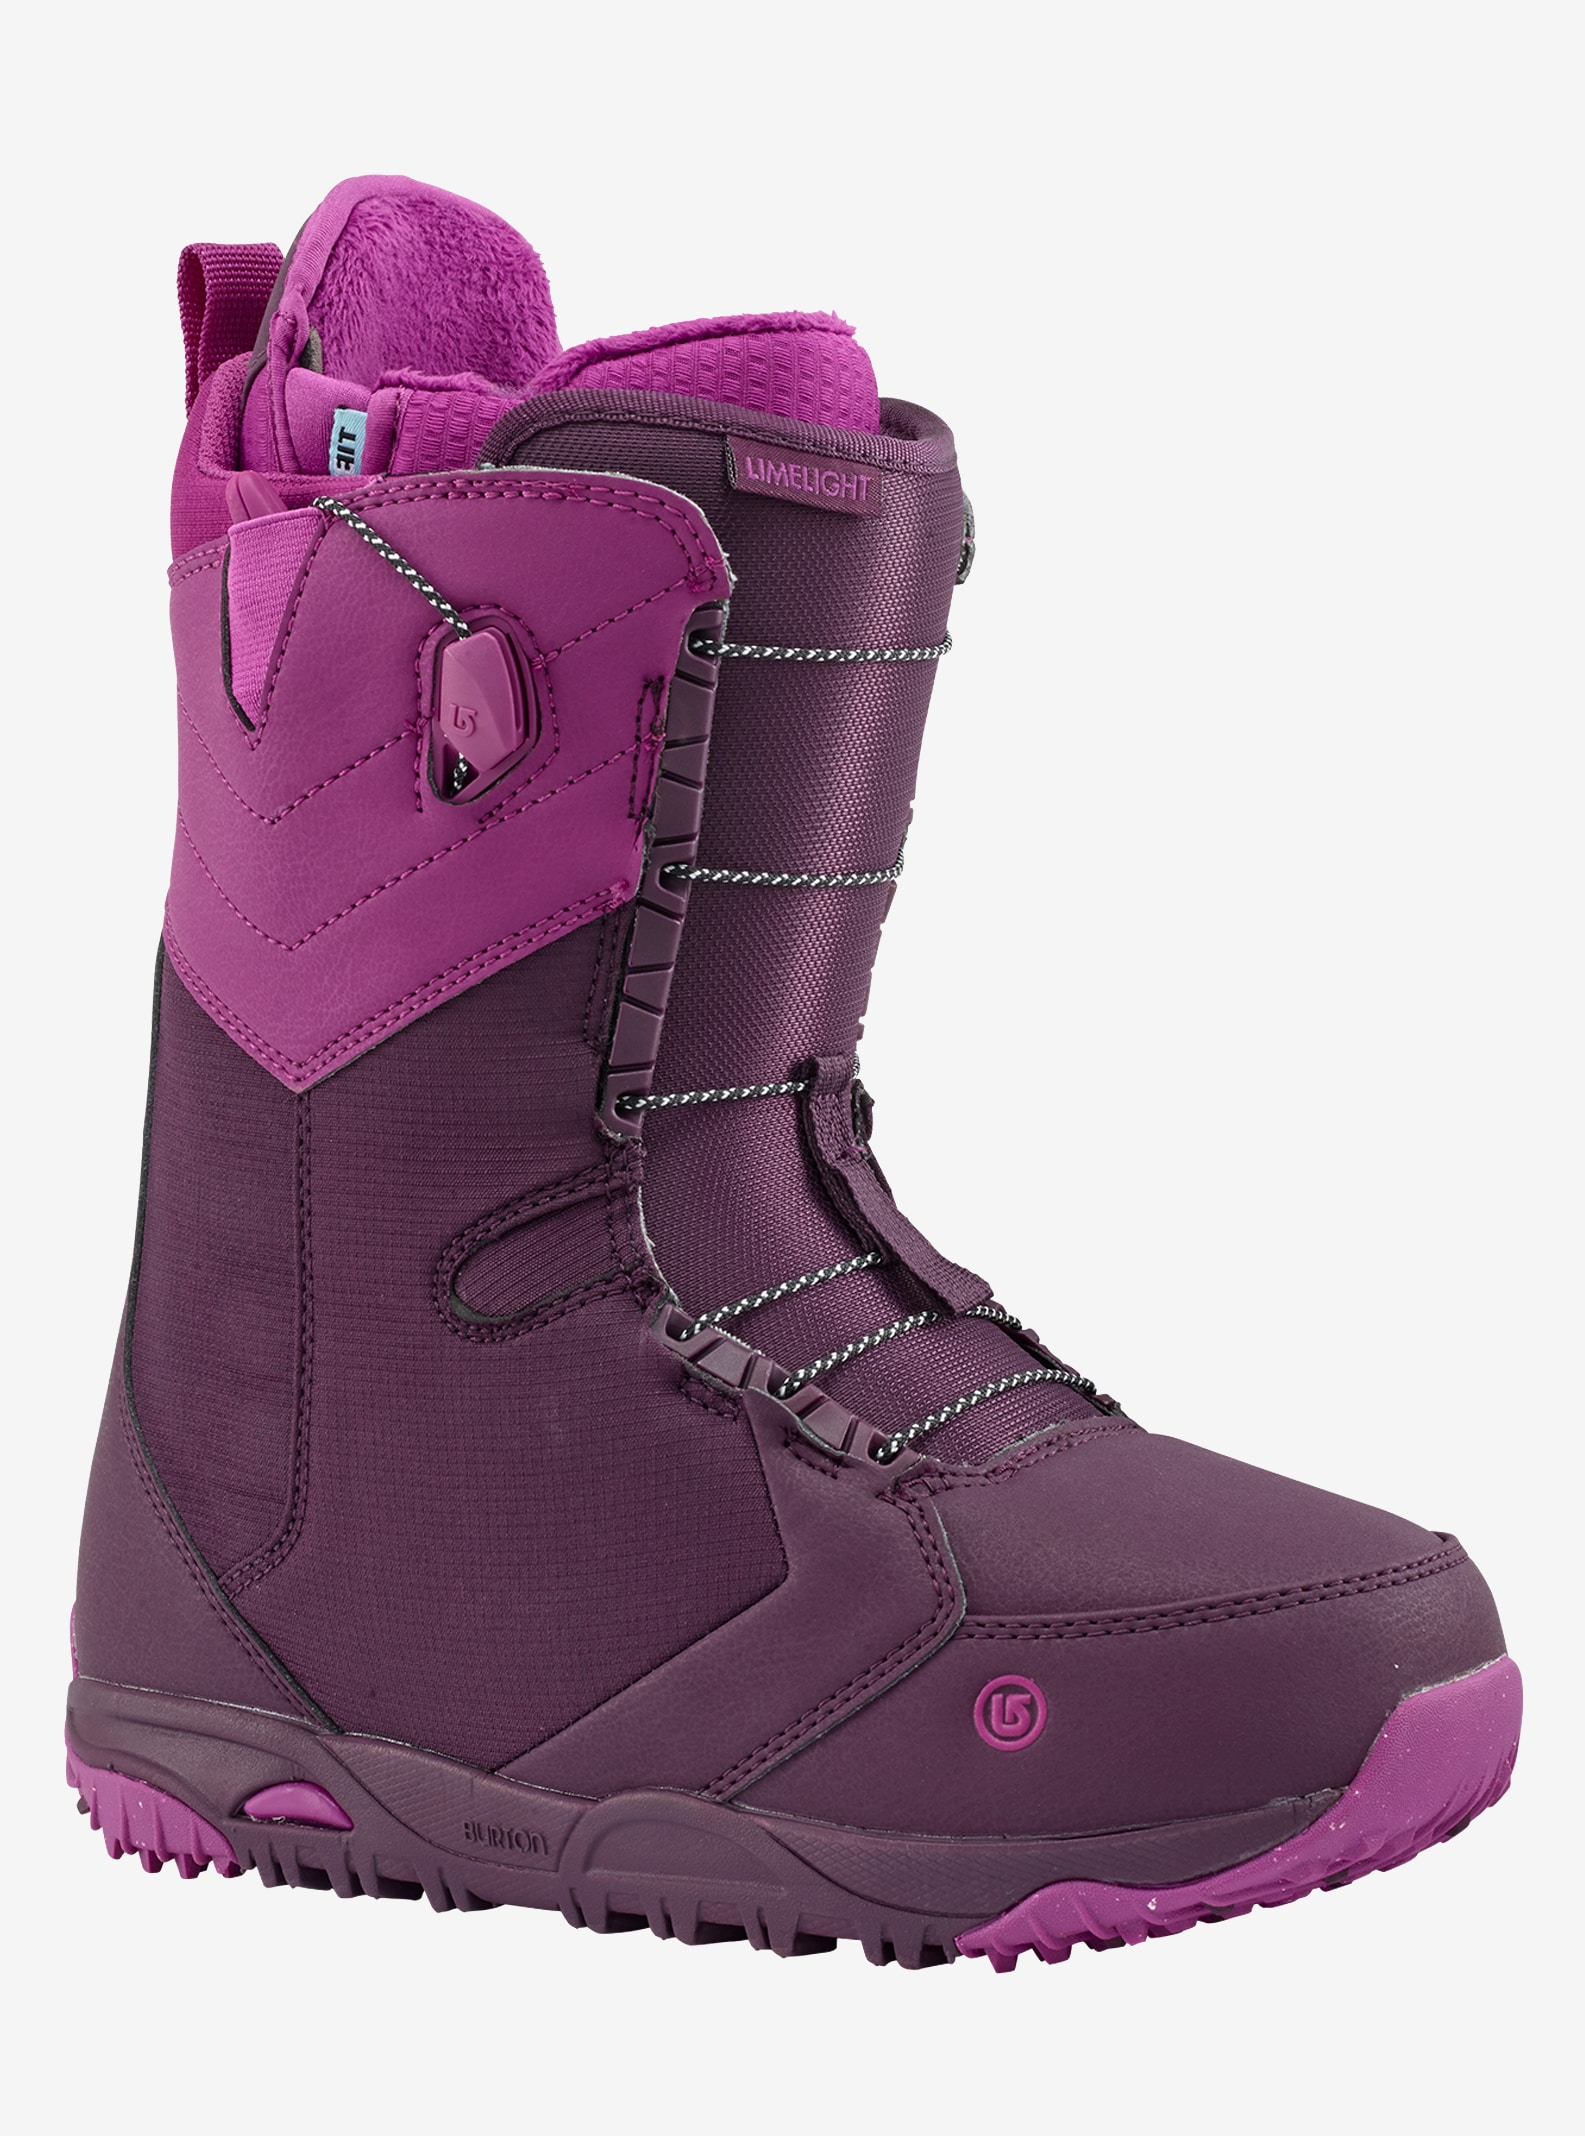 Women's Burton Limelight Snowboard Boot shown in Berry